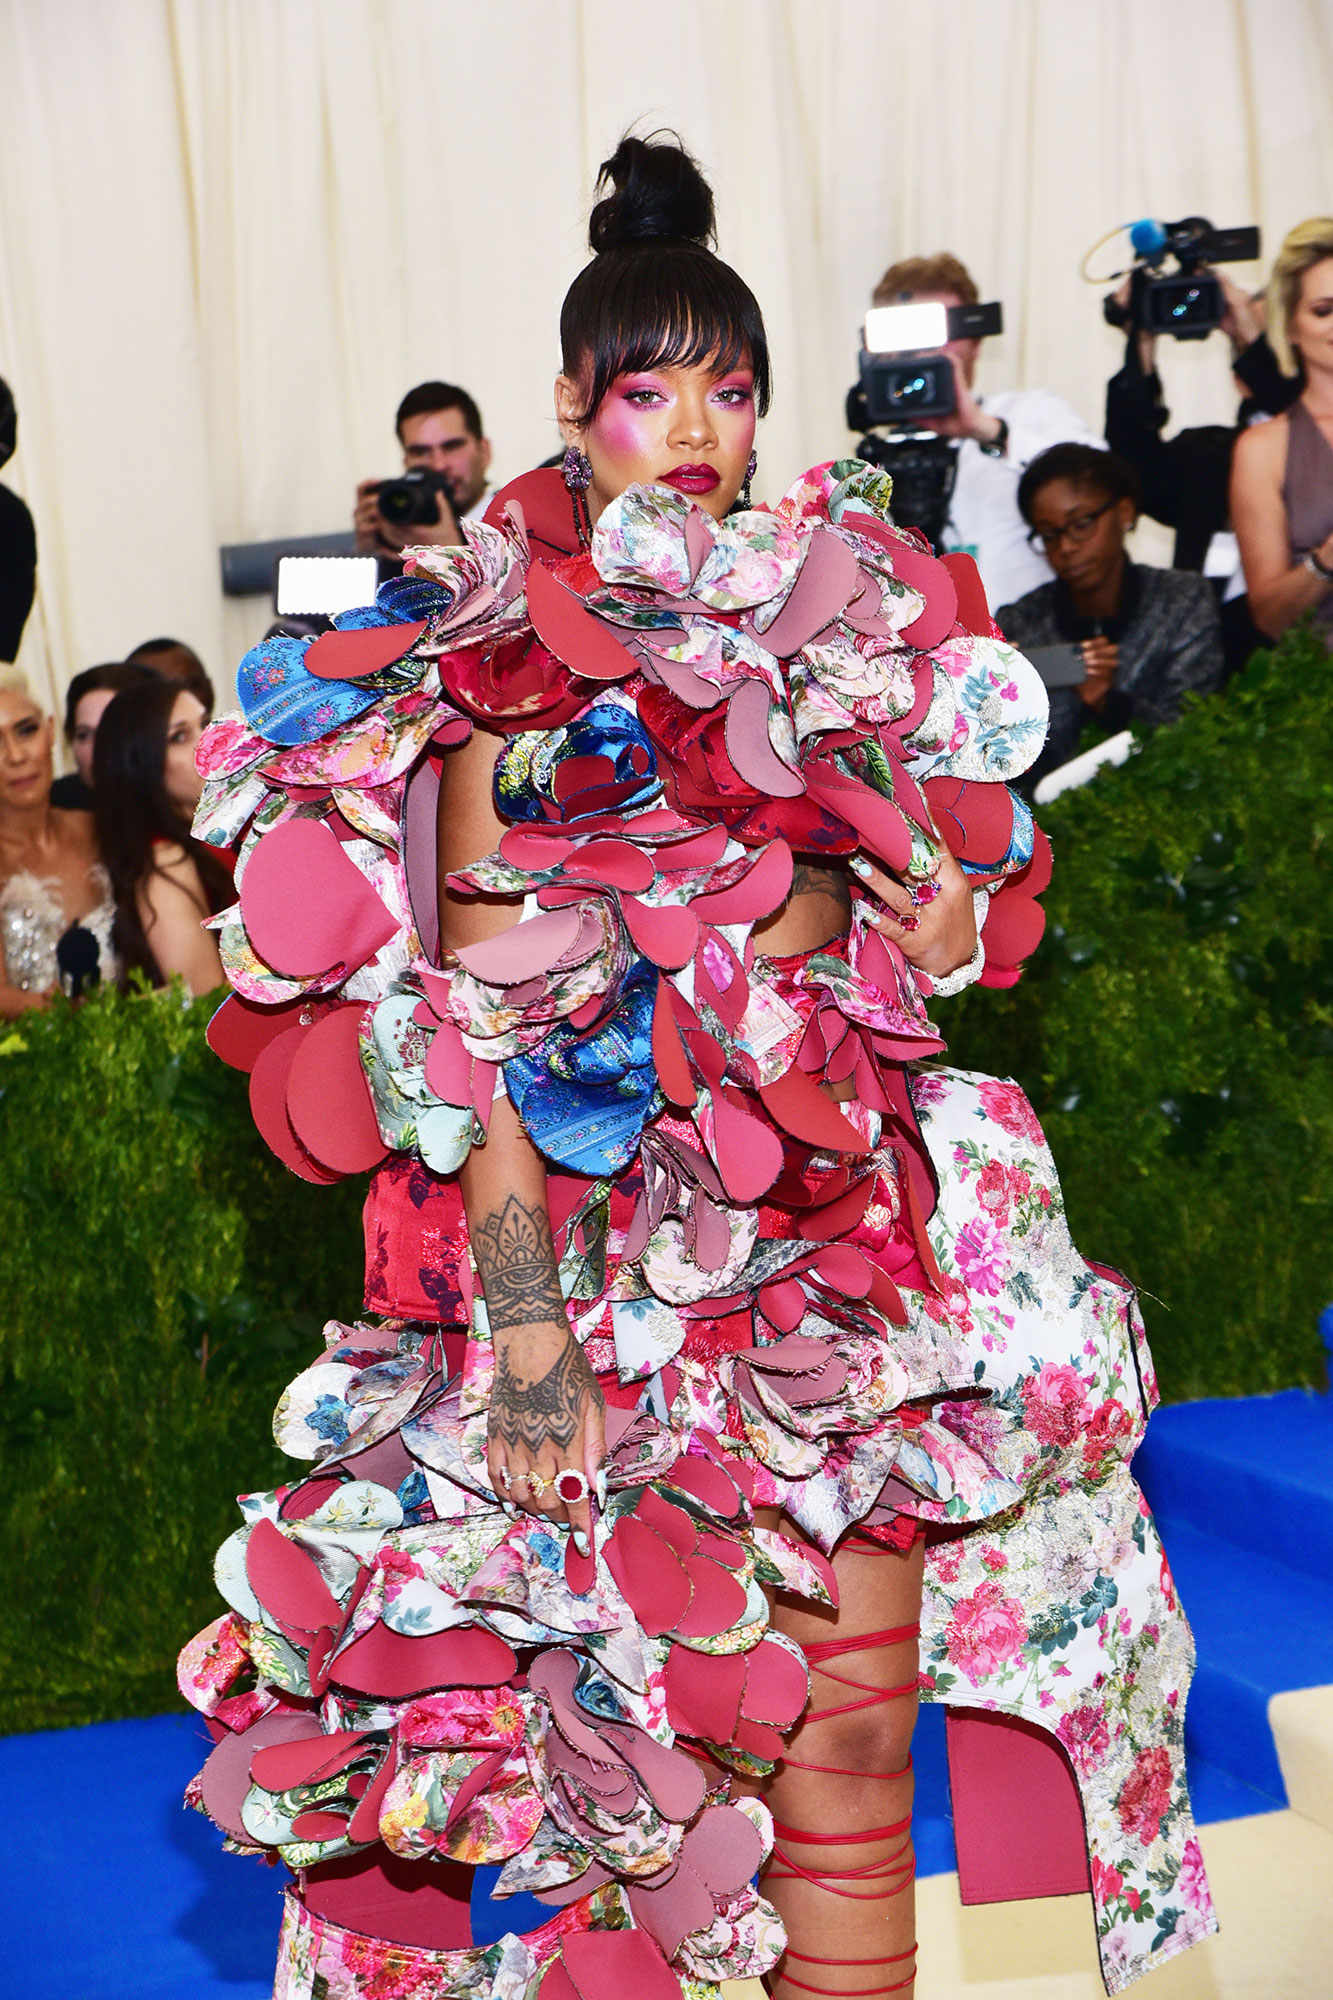 Rihanna The Wild Met Gala Red Carpet Fashion Looks We Can't Stop Thinking About - In Rei Kawakubo.